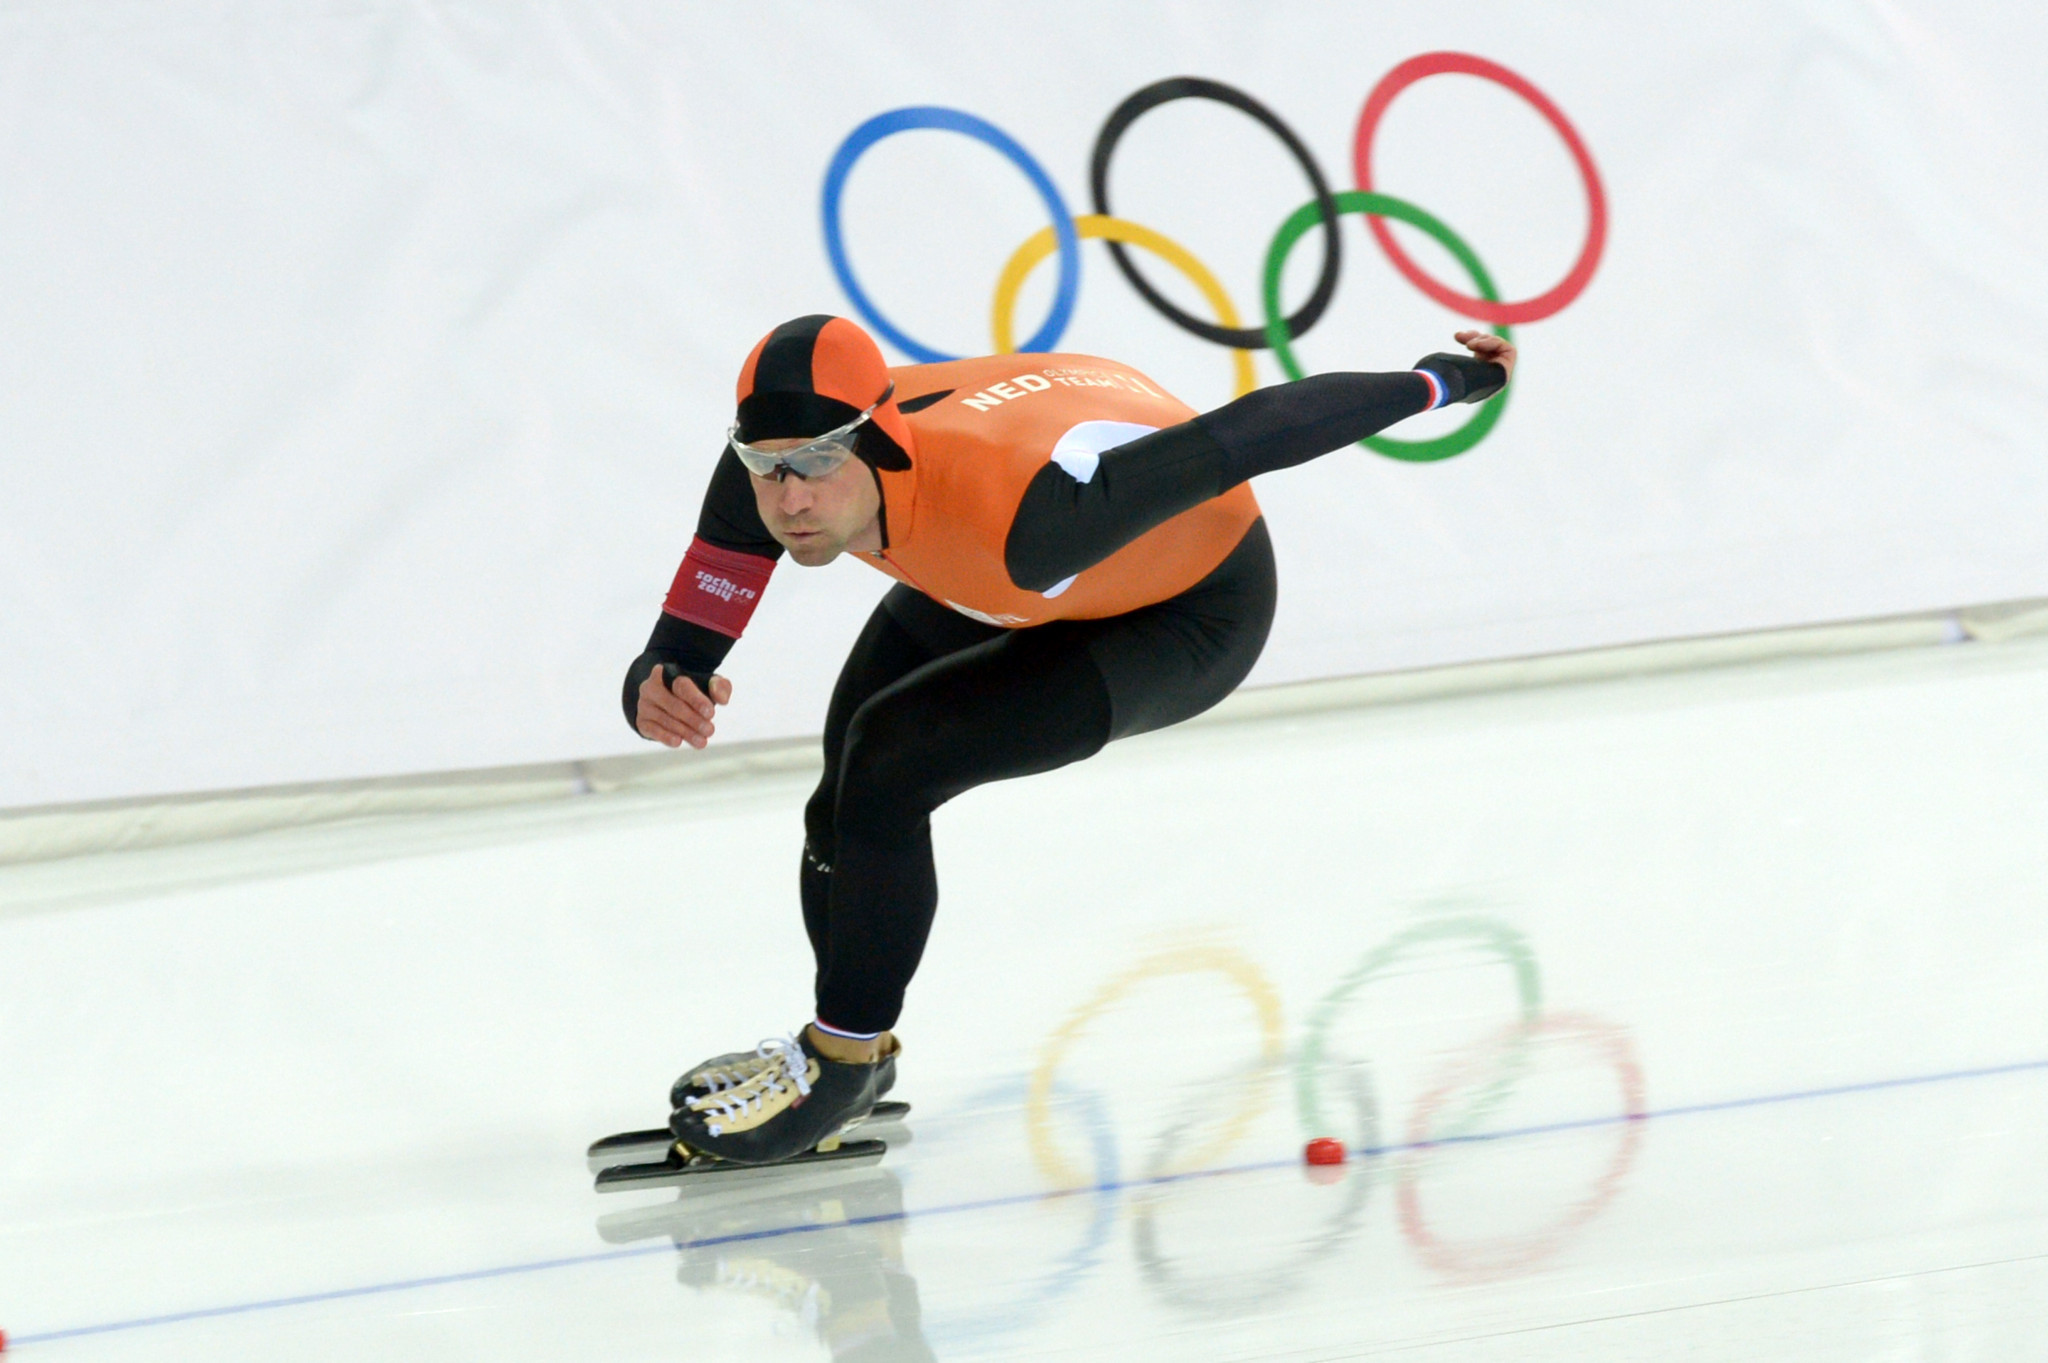 Mark Tuitert pictured competing at the Sochi 2014 Winter Olympic Games ©Getty Images